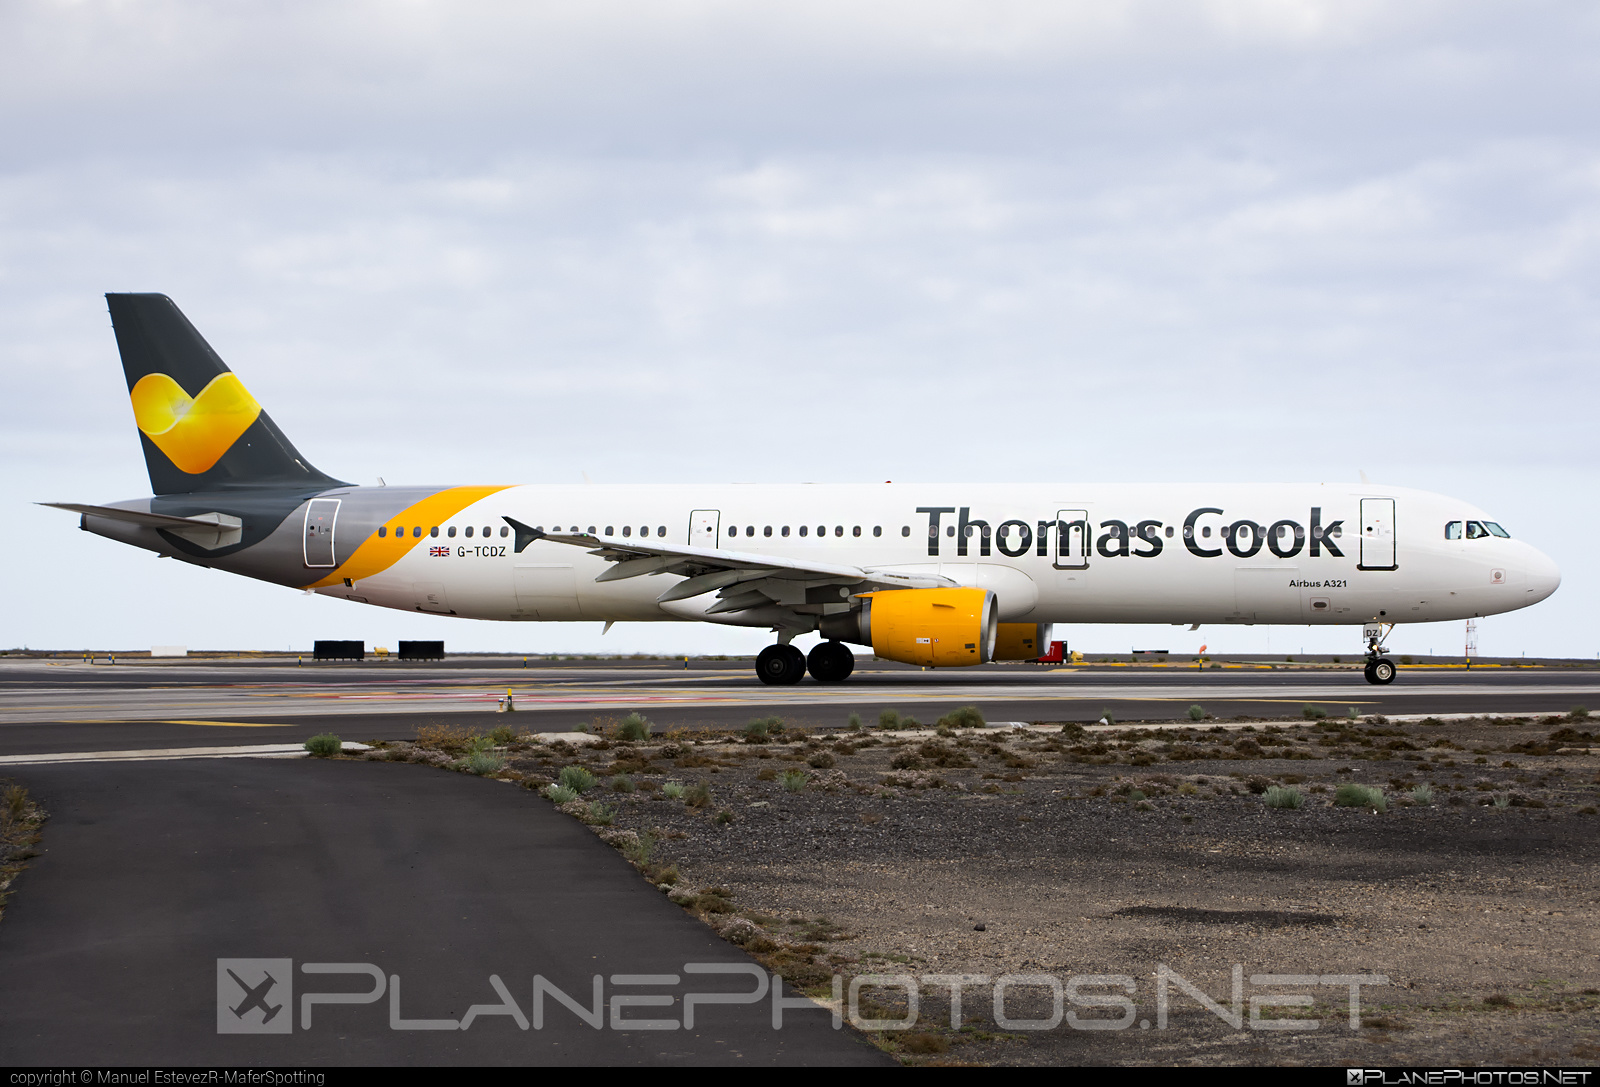 Airbus A321-211 - G-TCDZ operated by Thomas Cook Airlines #a320family #a321 #airbus #airbus321